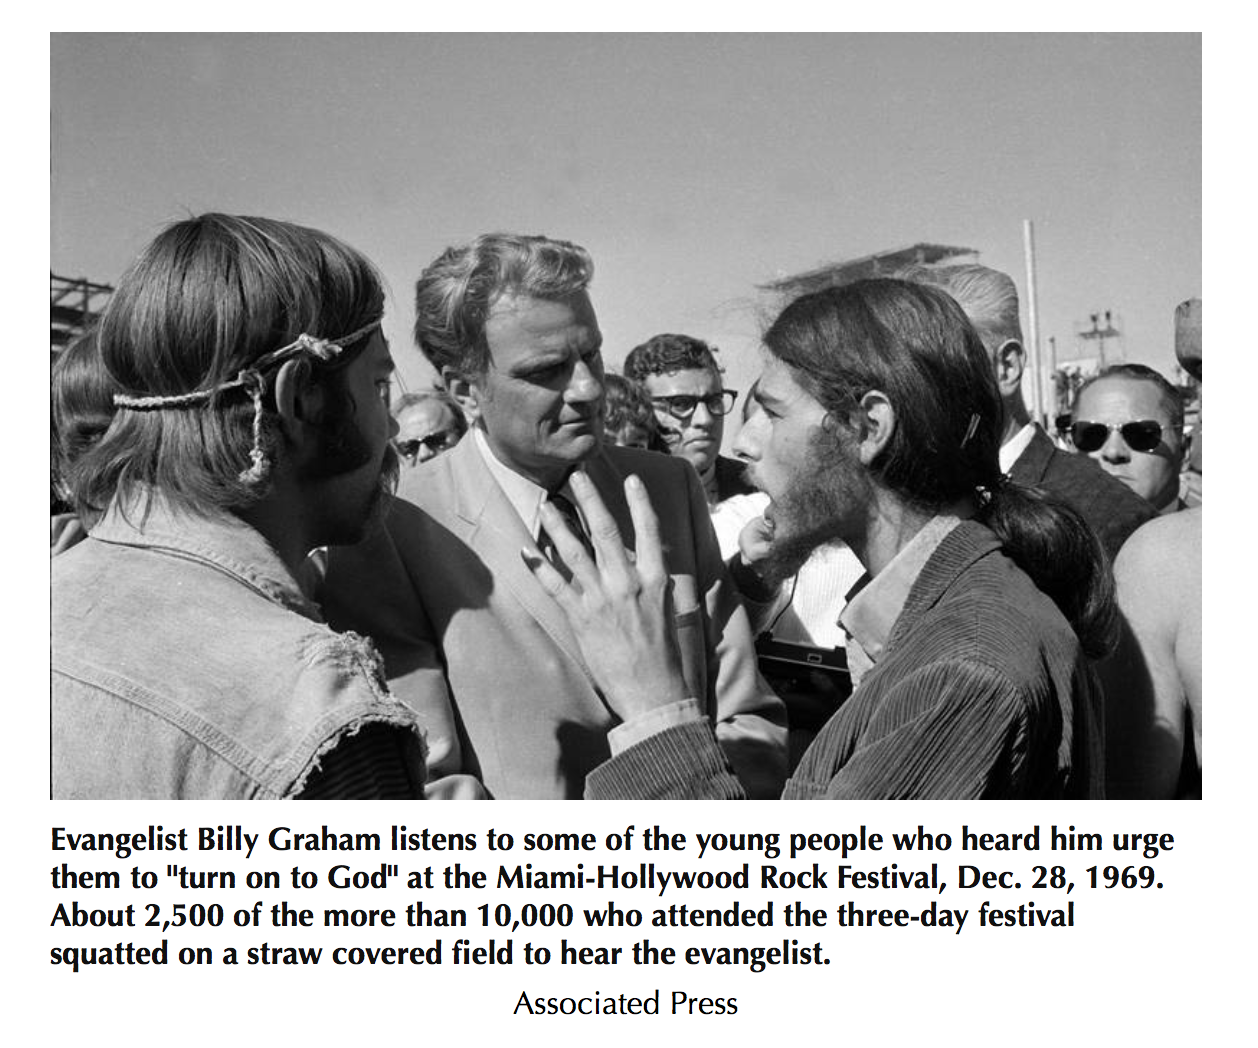 Billy Graham, hippies, and the rock concert